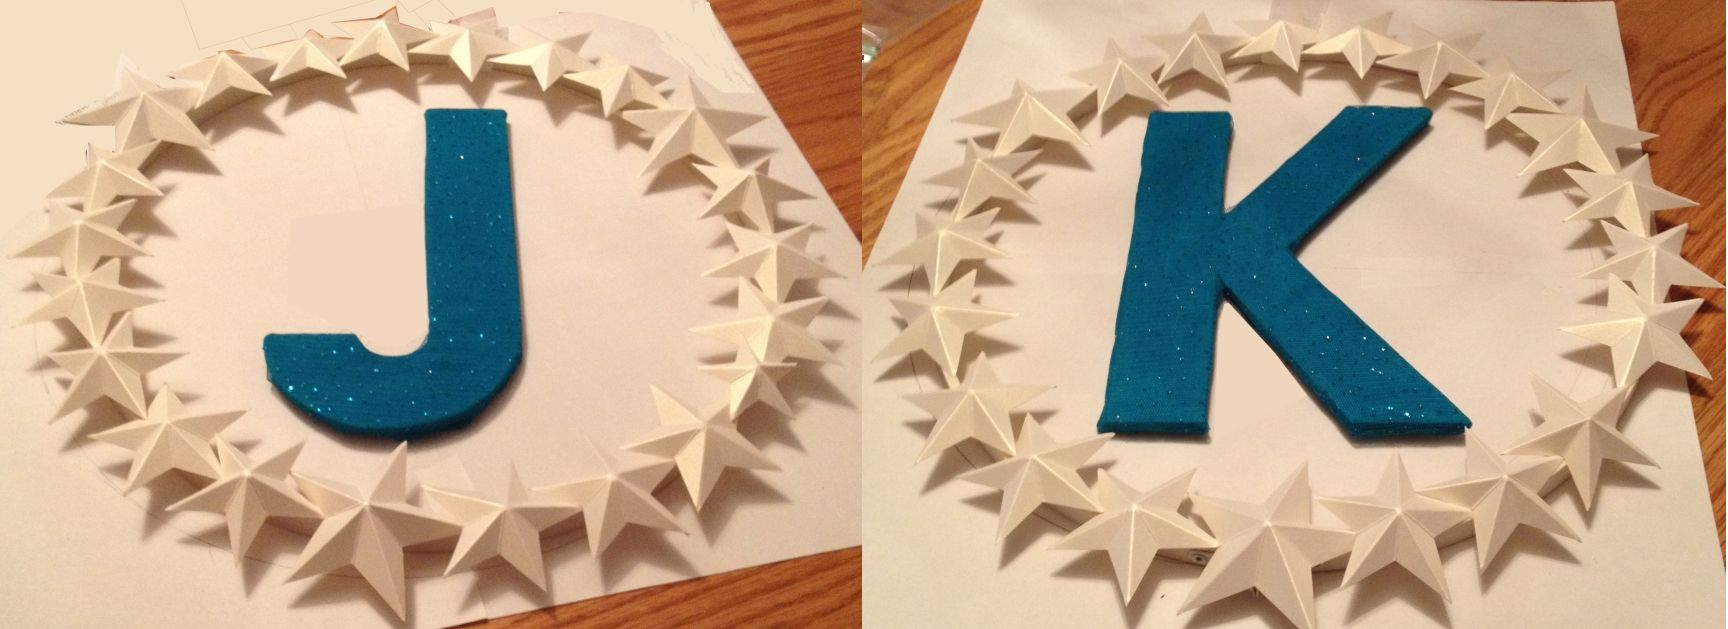 Wreaths for Jonathan and Katy's wedding rehearsal dinner - 3D origami stars of metallic white paper with sparkly letters